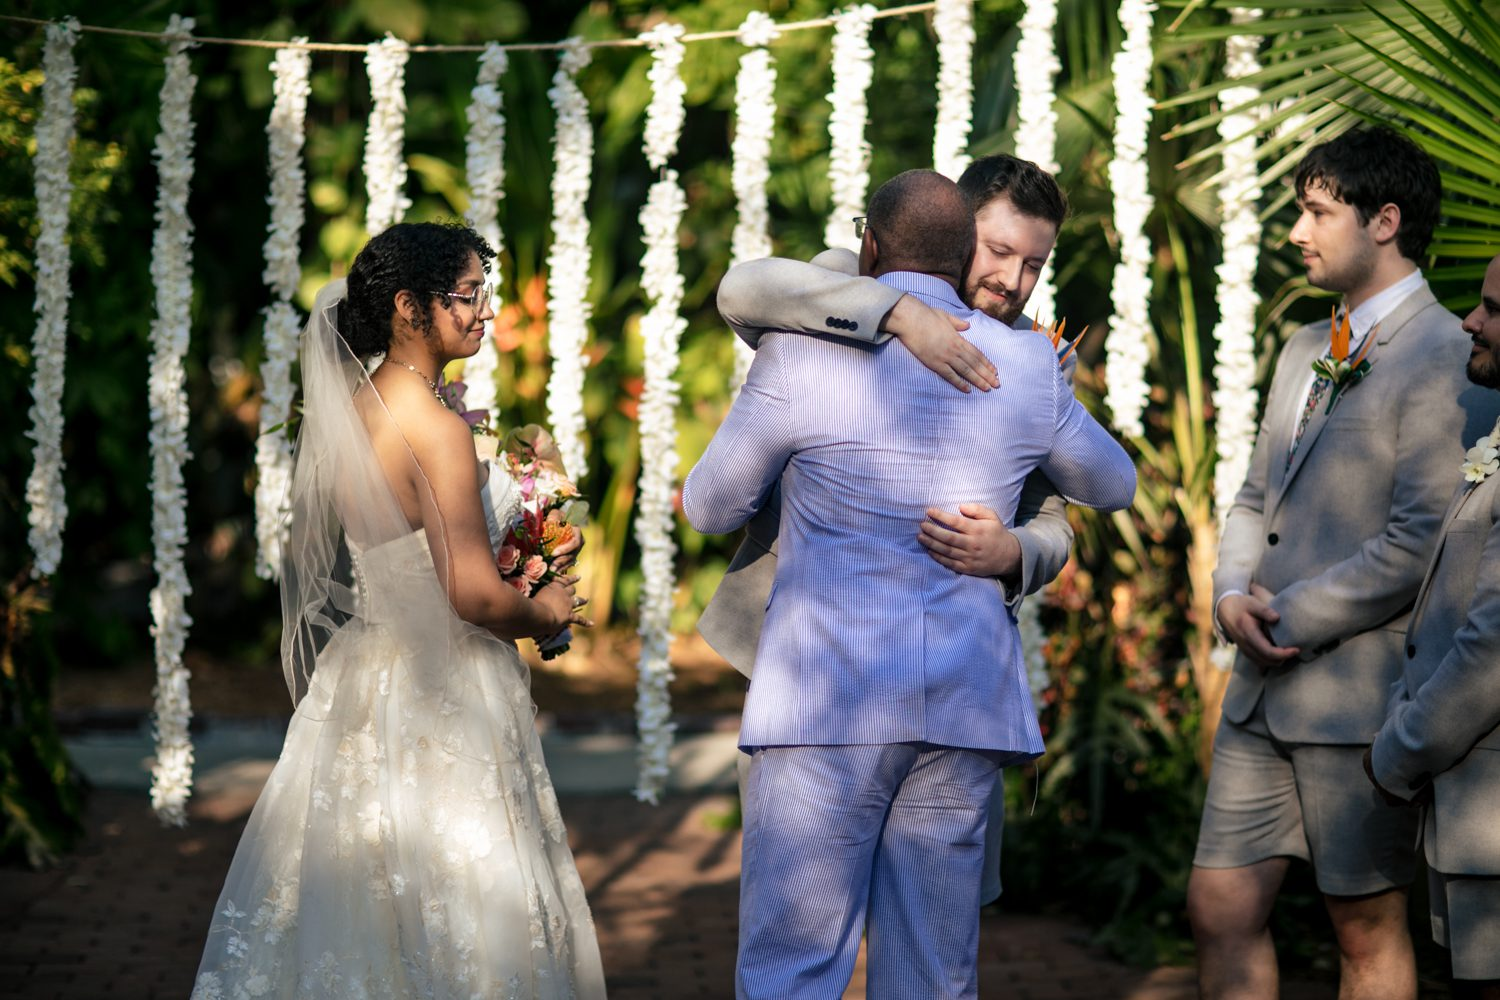 Groom hugging his brides father after wedding ceremony